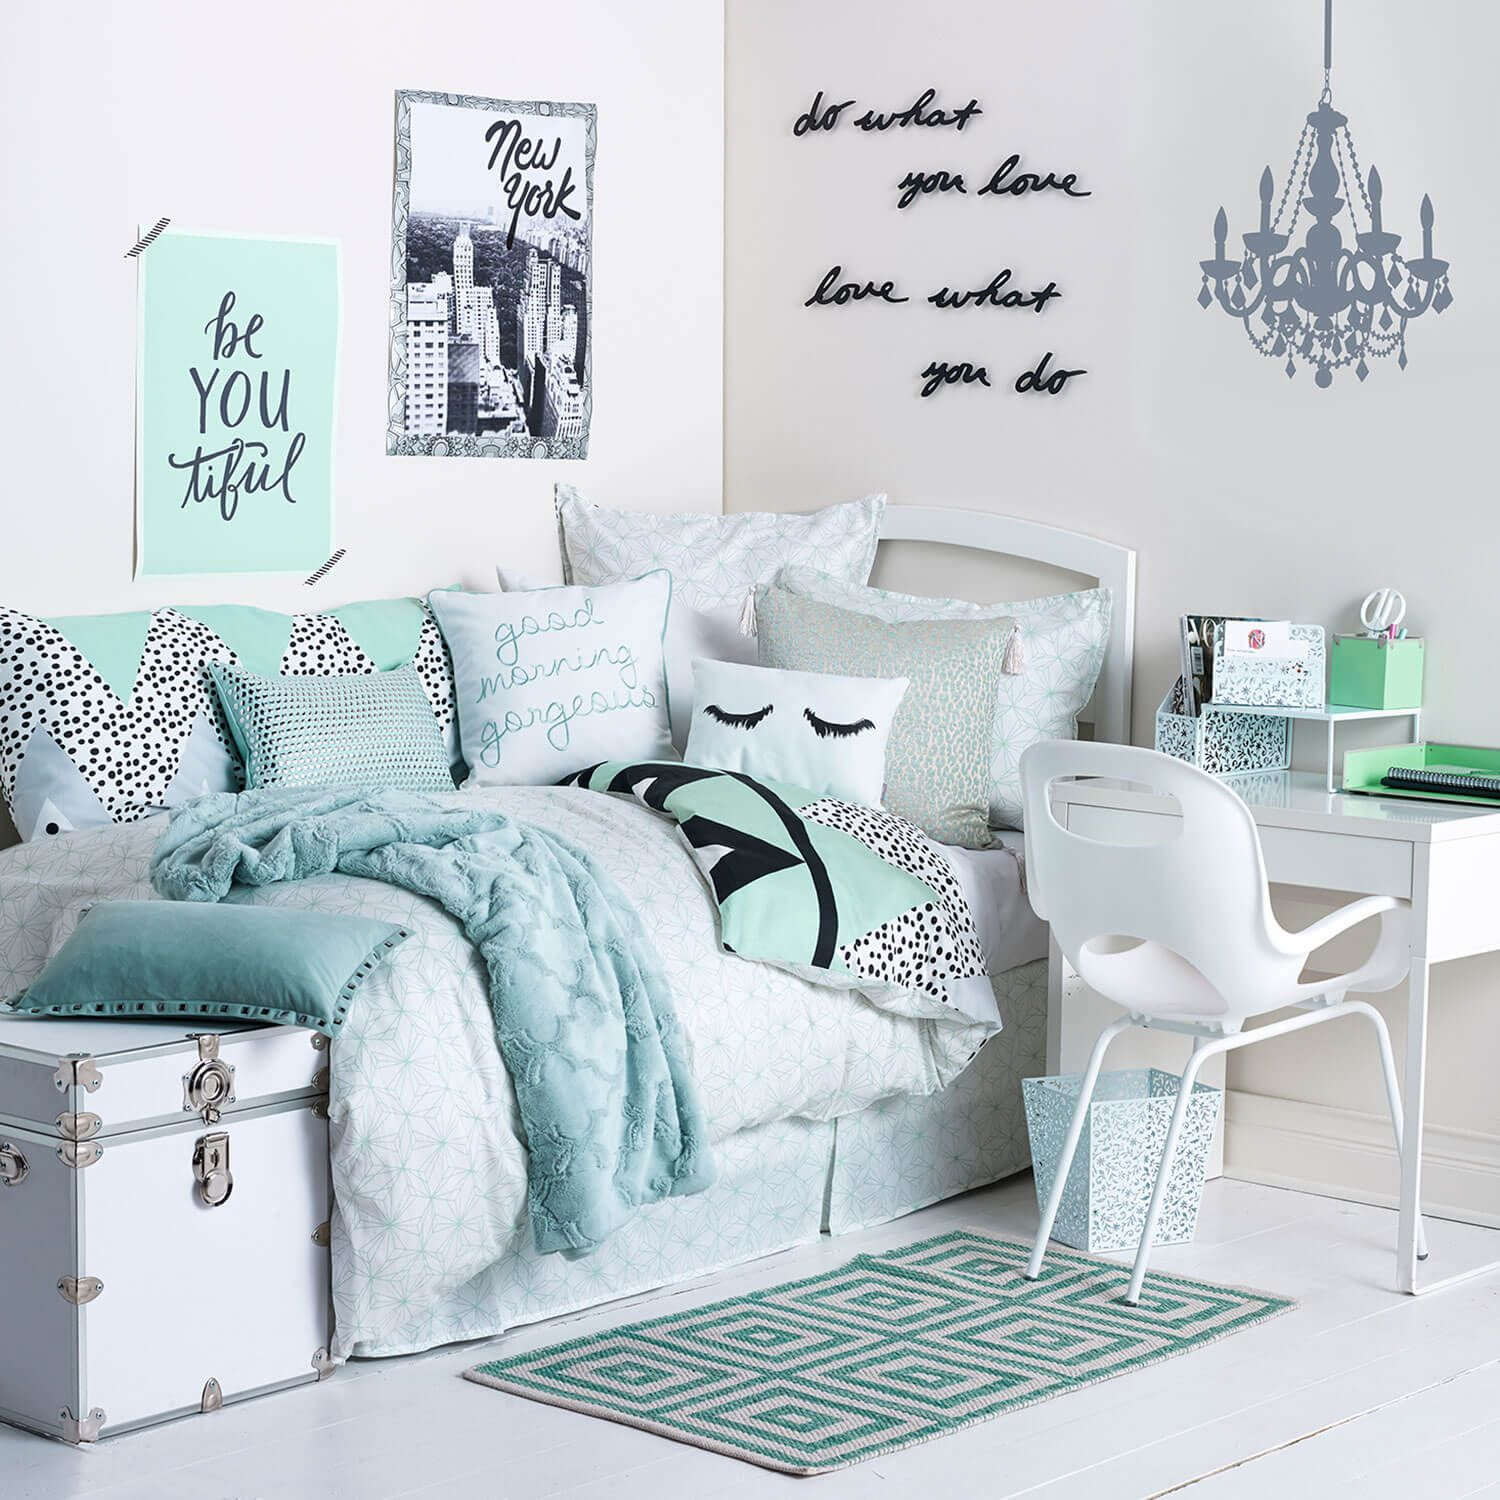 Teen Rooms For Girls Captivating Uptown Girl Room  Available On Dormify  Dorm Bedding Loves Decorating Design